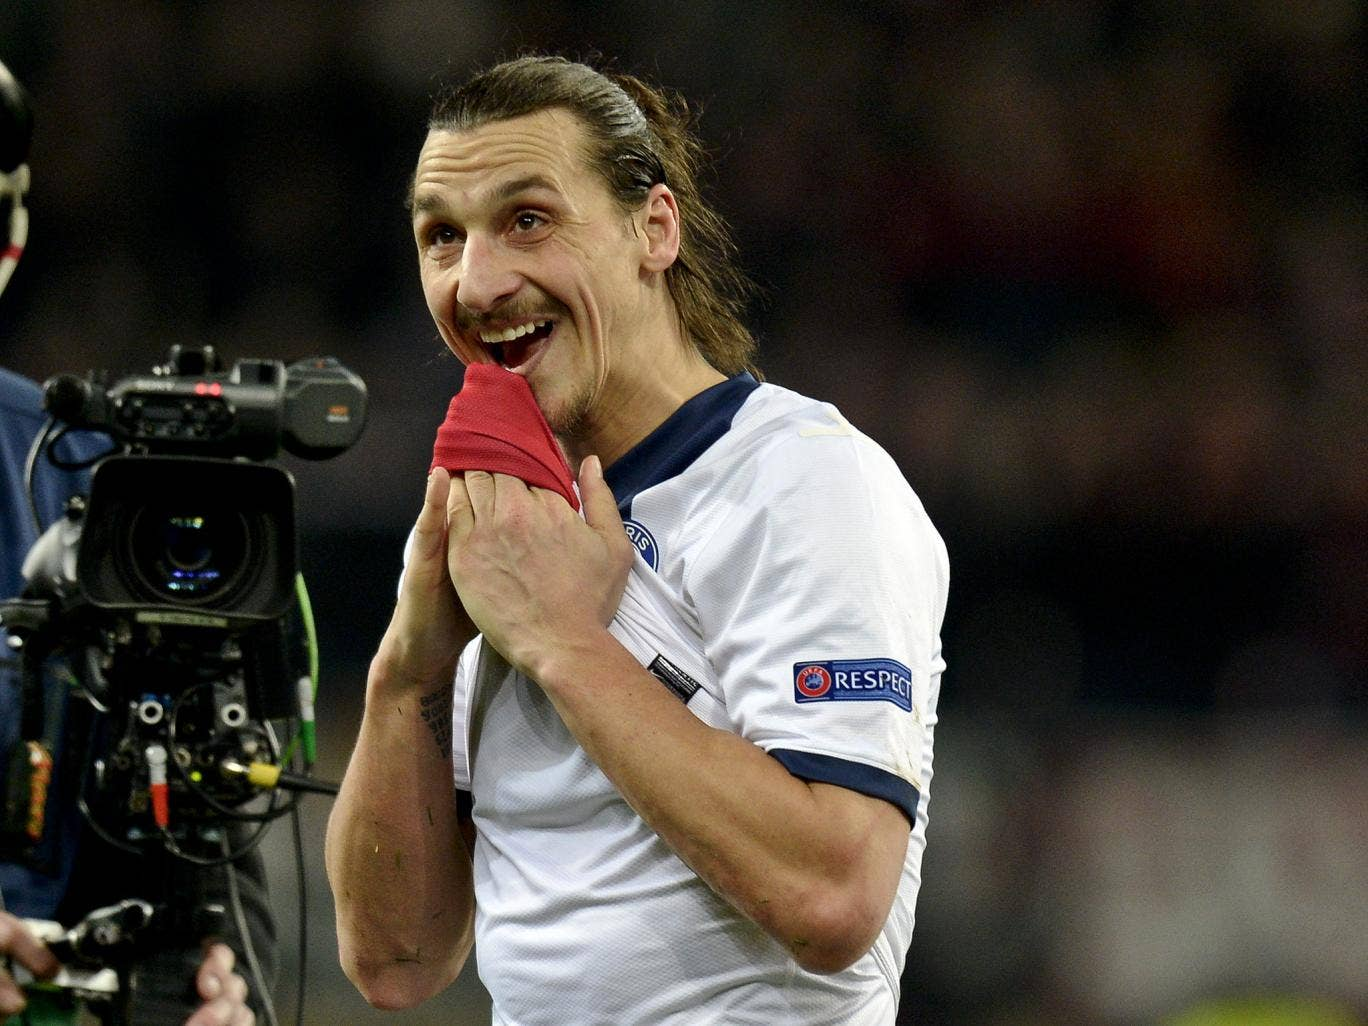 Zlatan Ibrahimovic pictured after scoring twice for PSG ina 4-0 Champions League win over Leverkusen